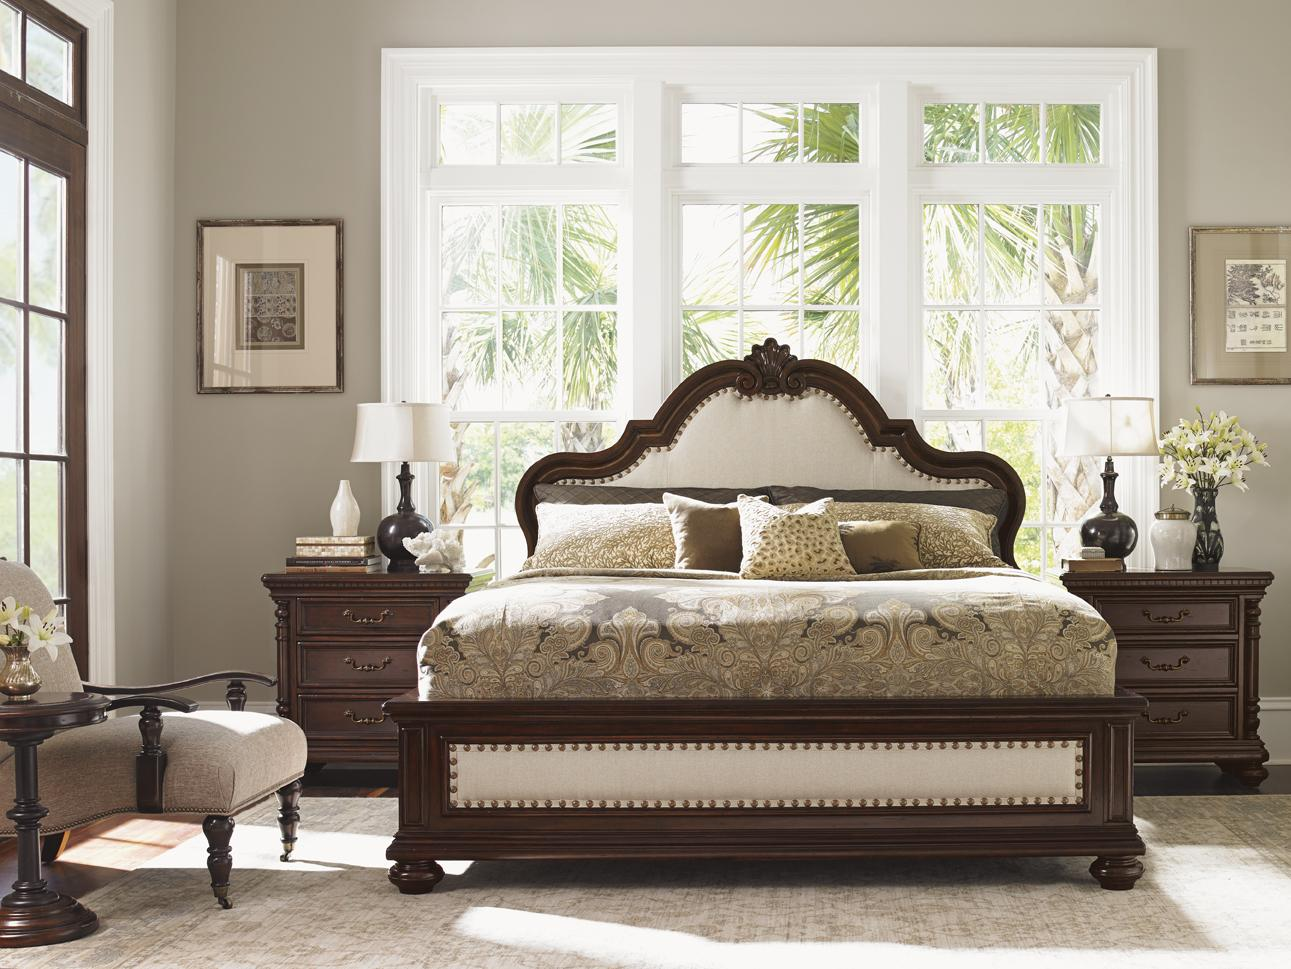 Kilimanjaro 552 by tommy bahama home baer 39 s furniture for Home collection furniture